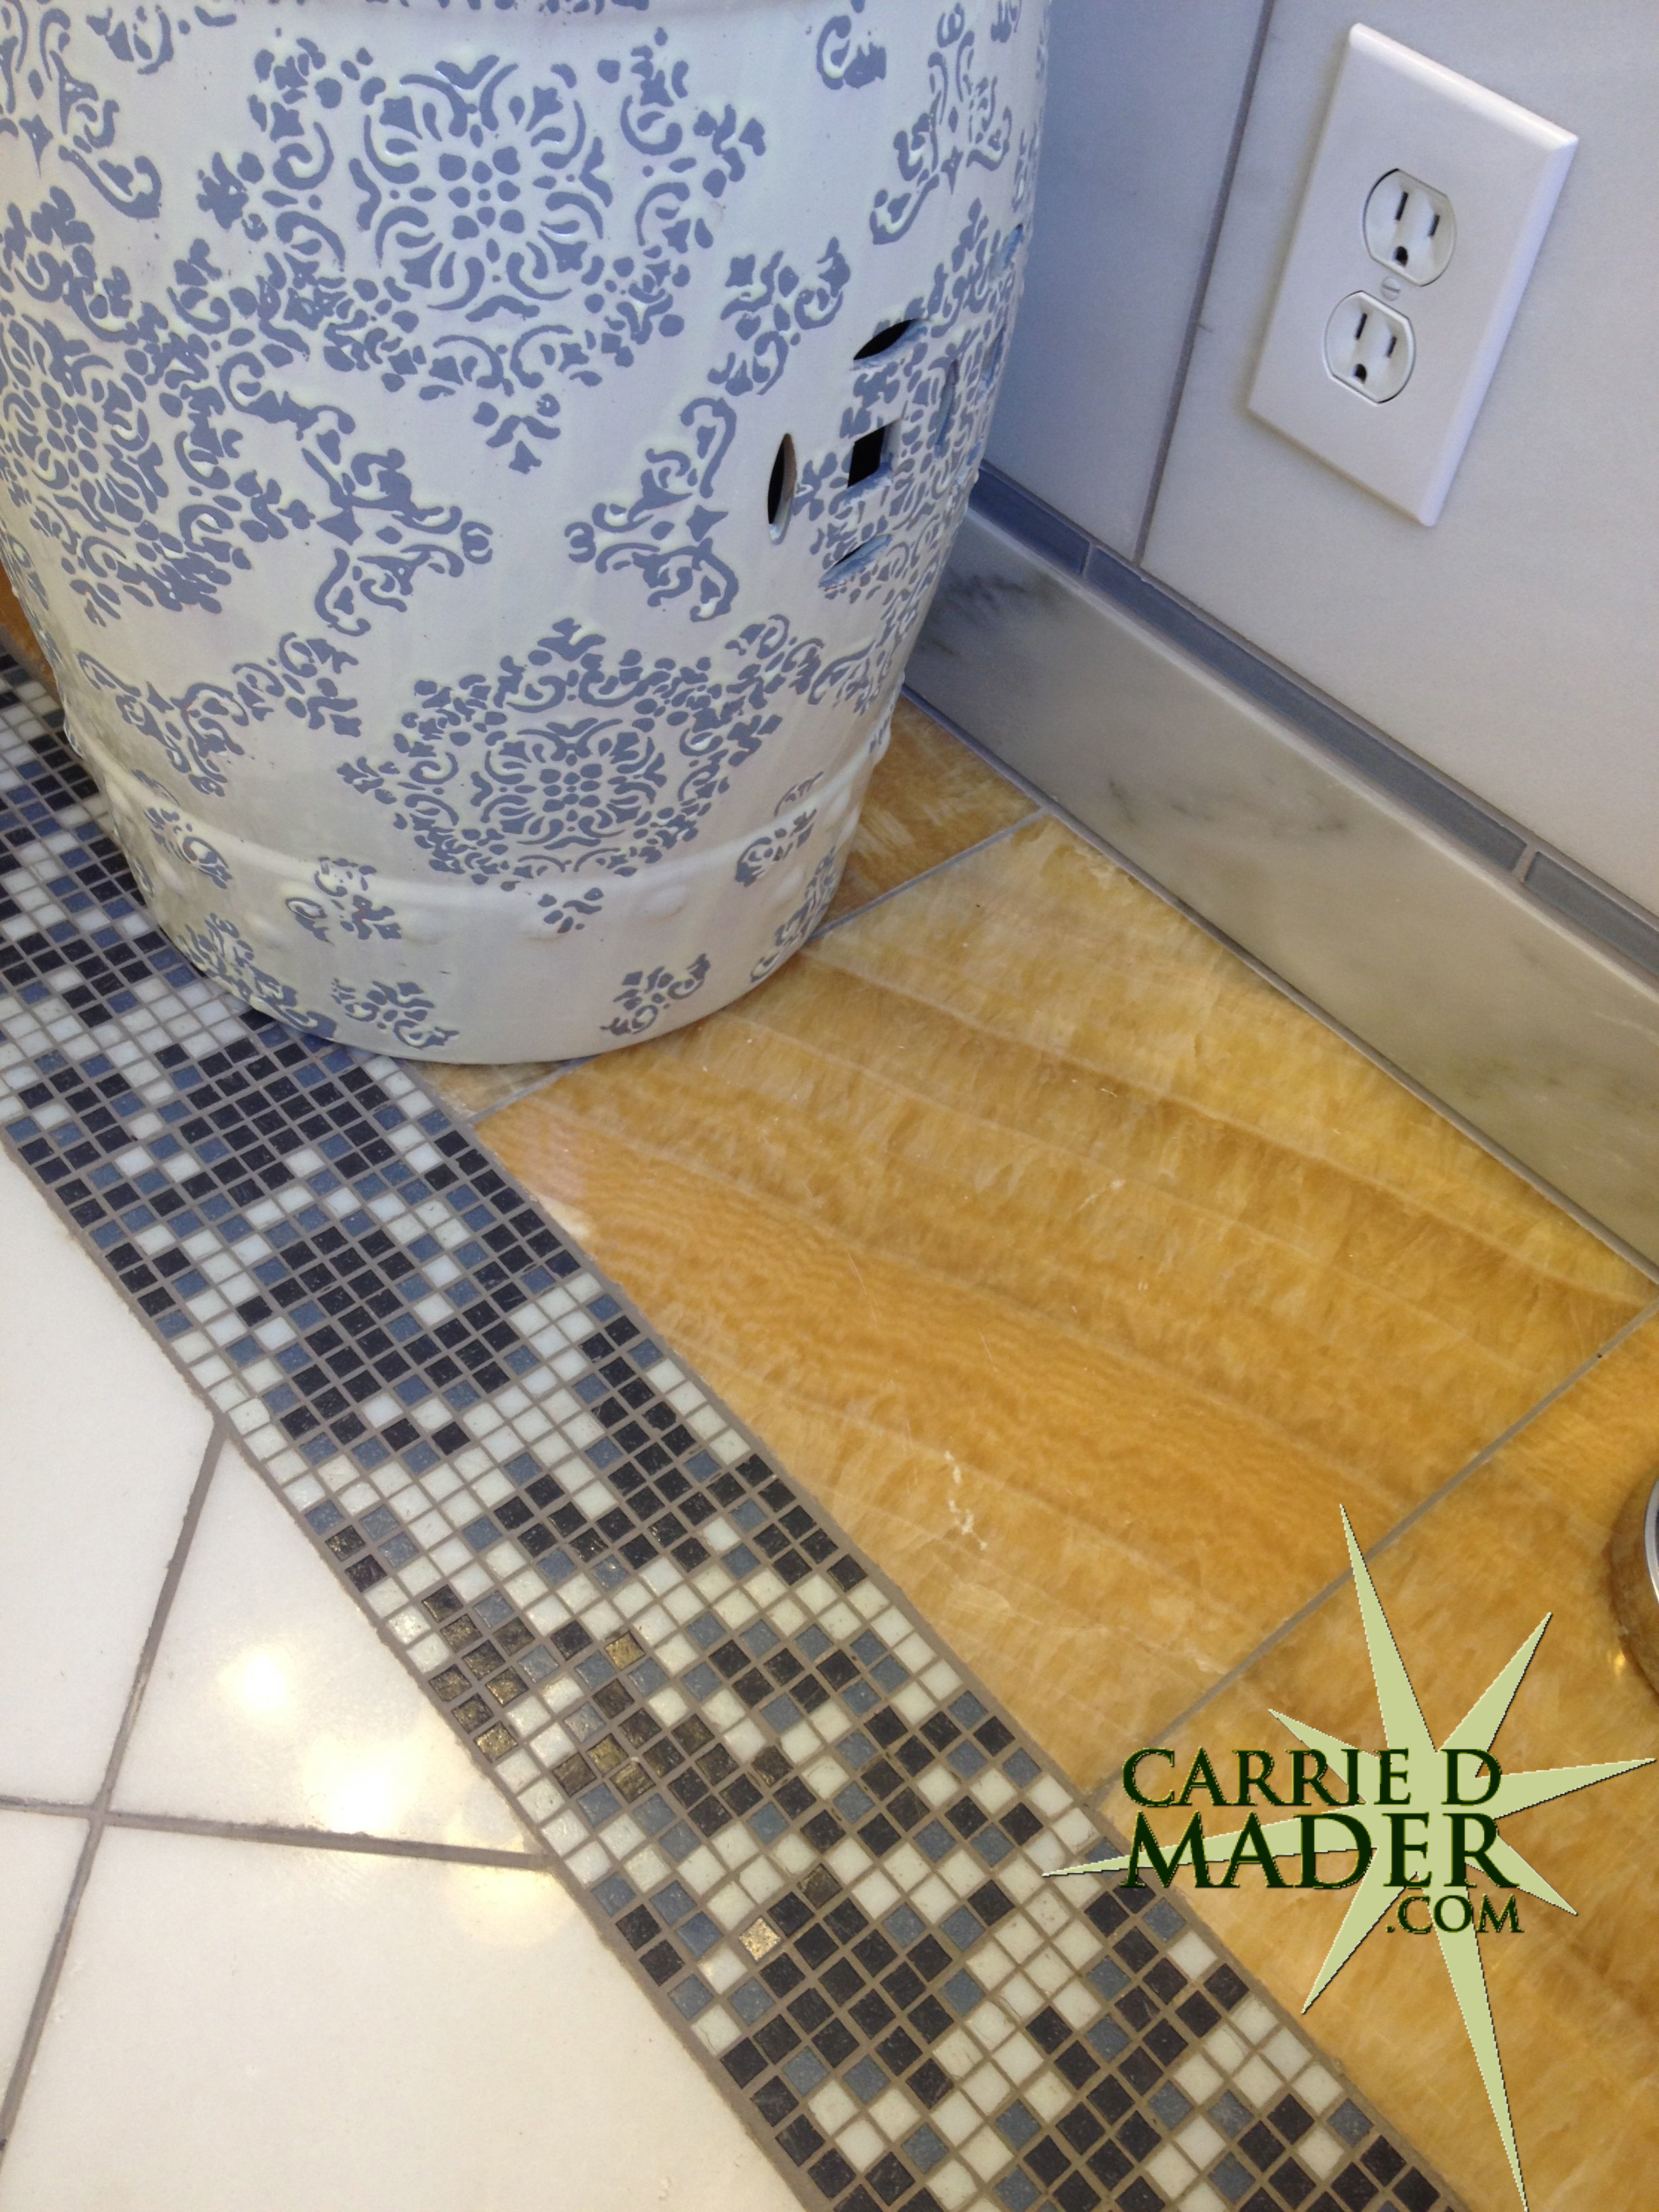 The story about the bathroom floor carrie d mader for Glass tile border bathroom ideas